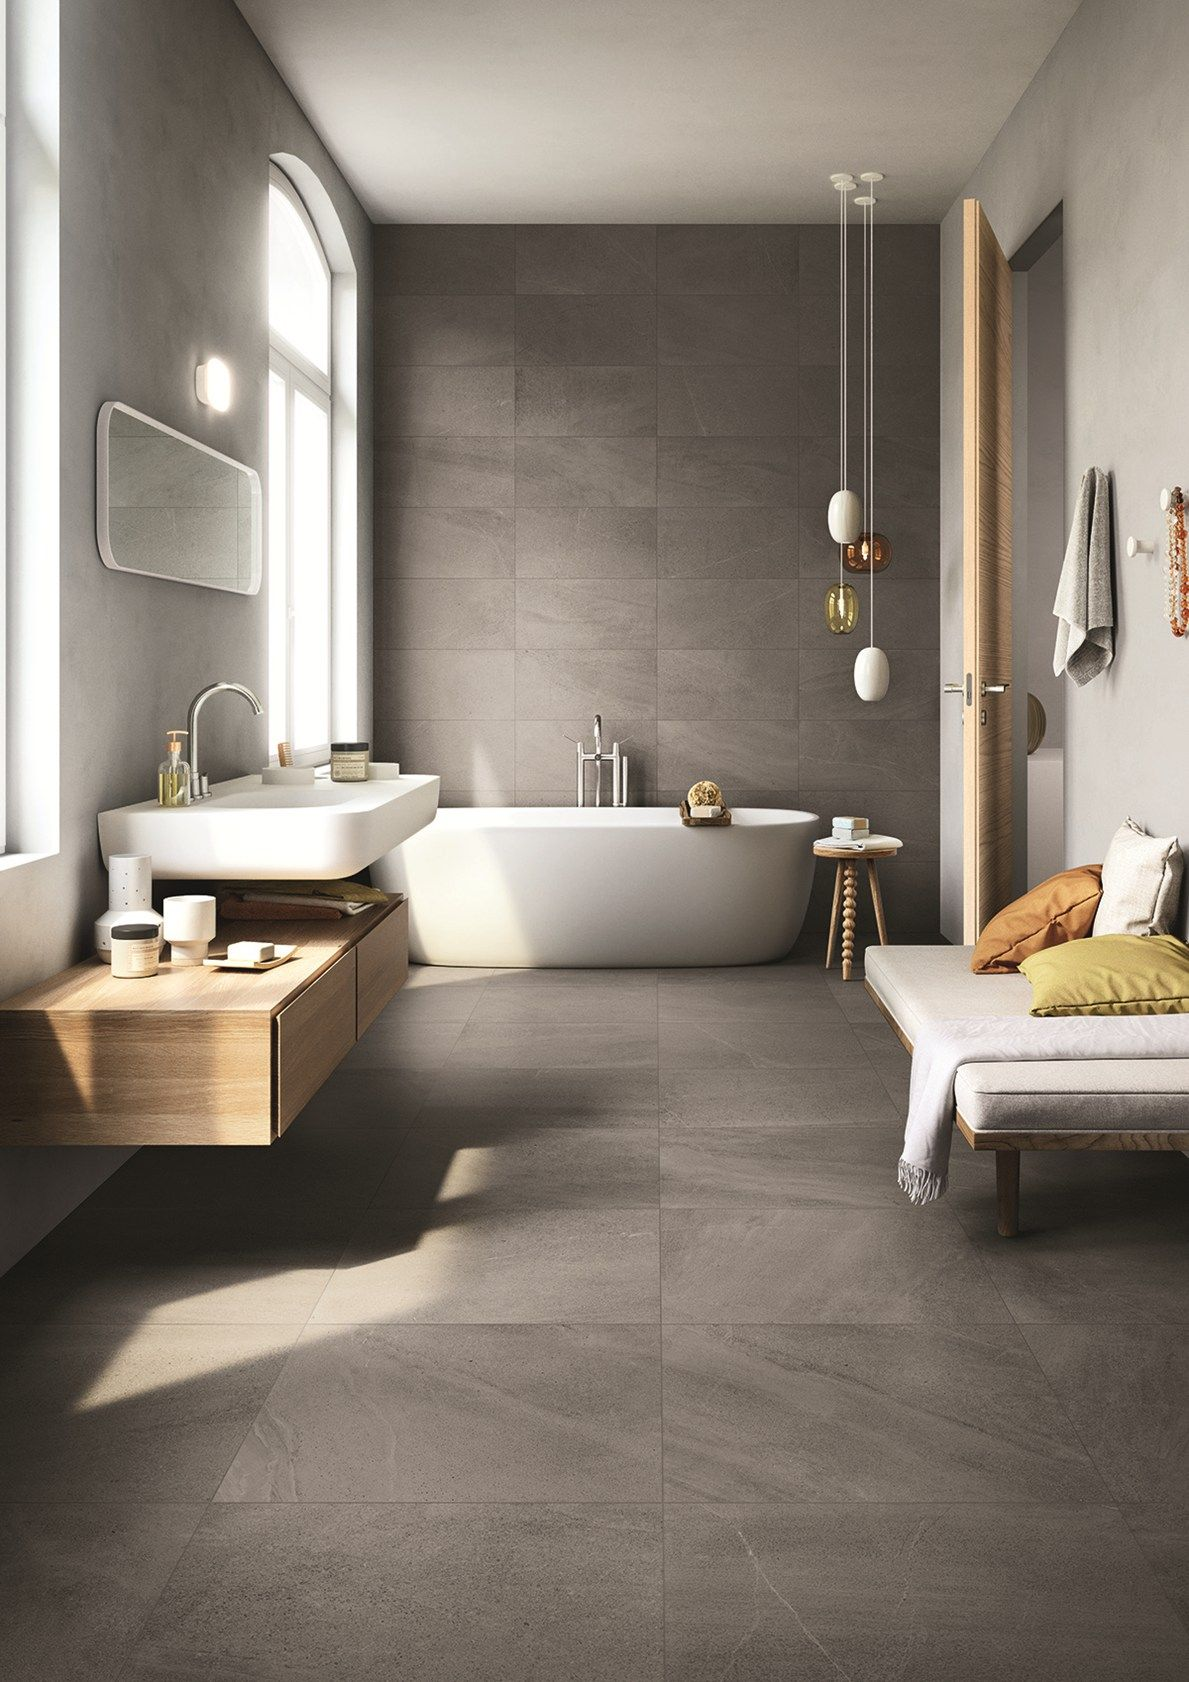 Bathroom Designers Inspiration The Texture Of Sedimented Stone For Limestone New Cotto D'este Inspiration